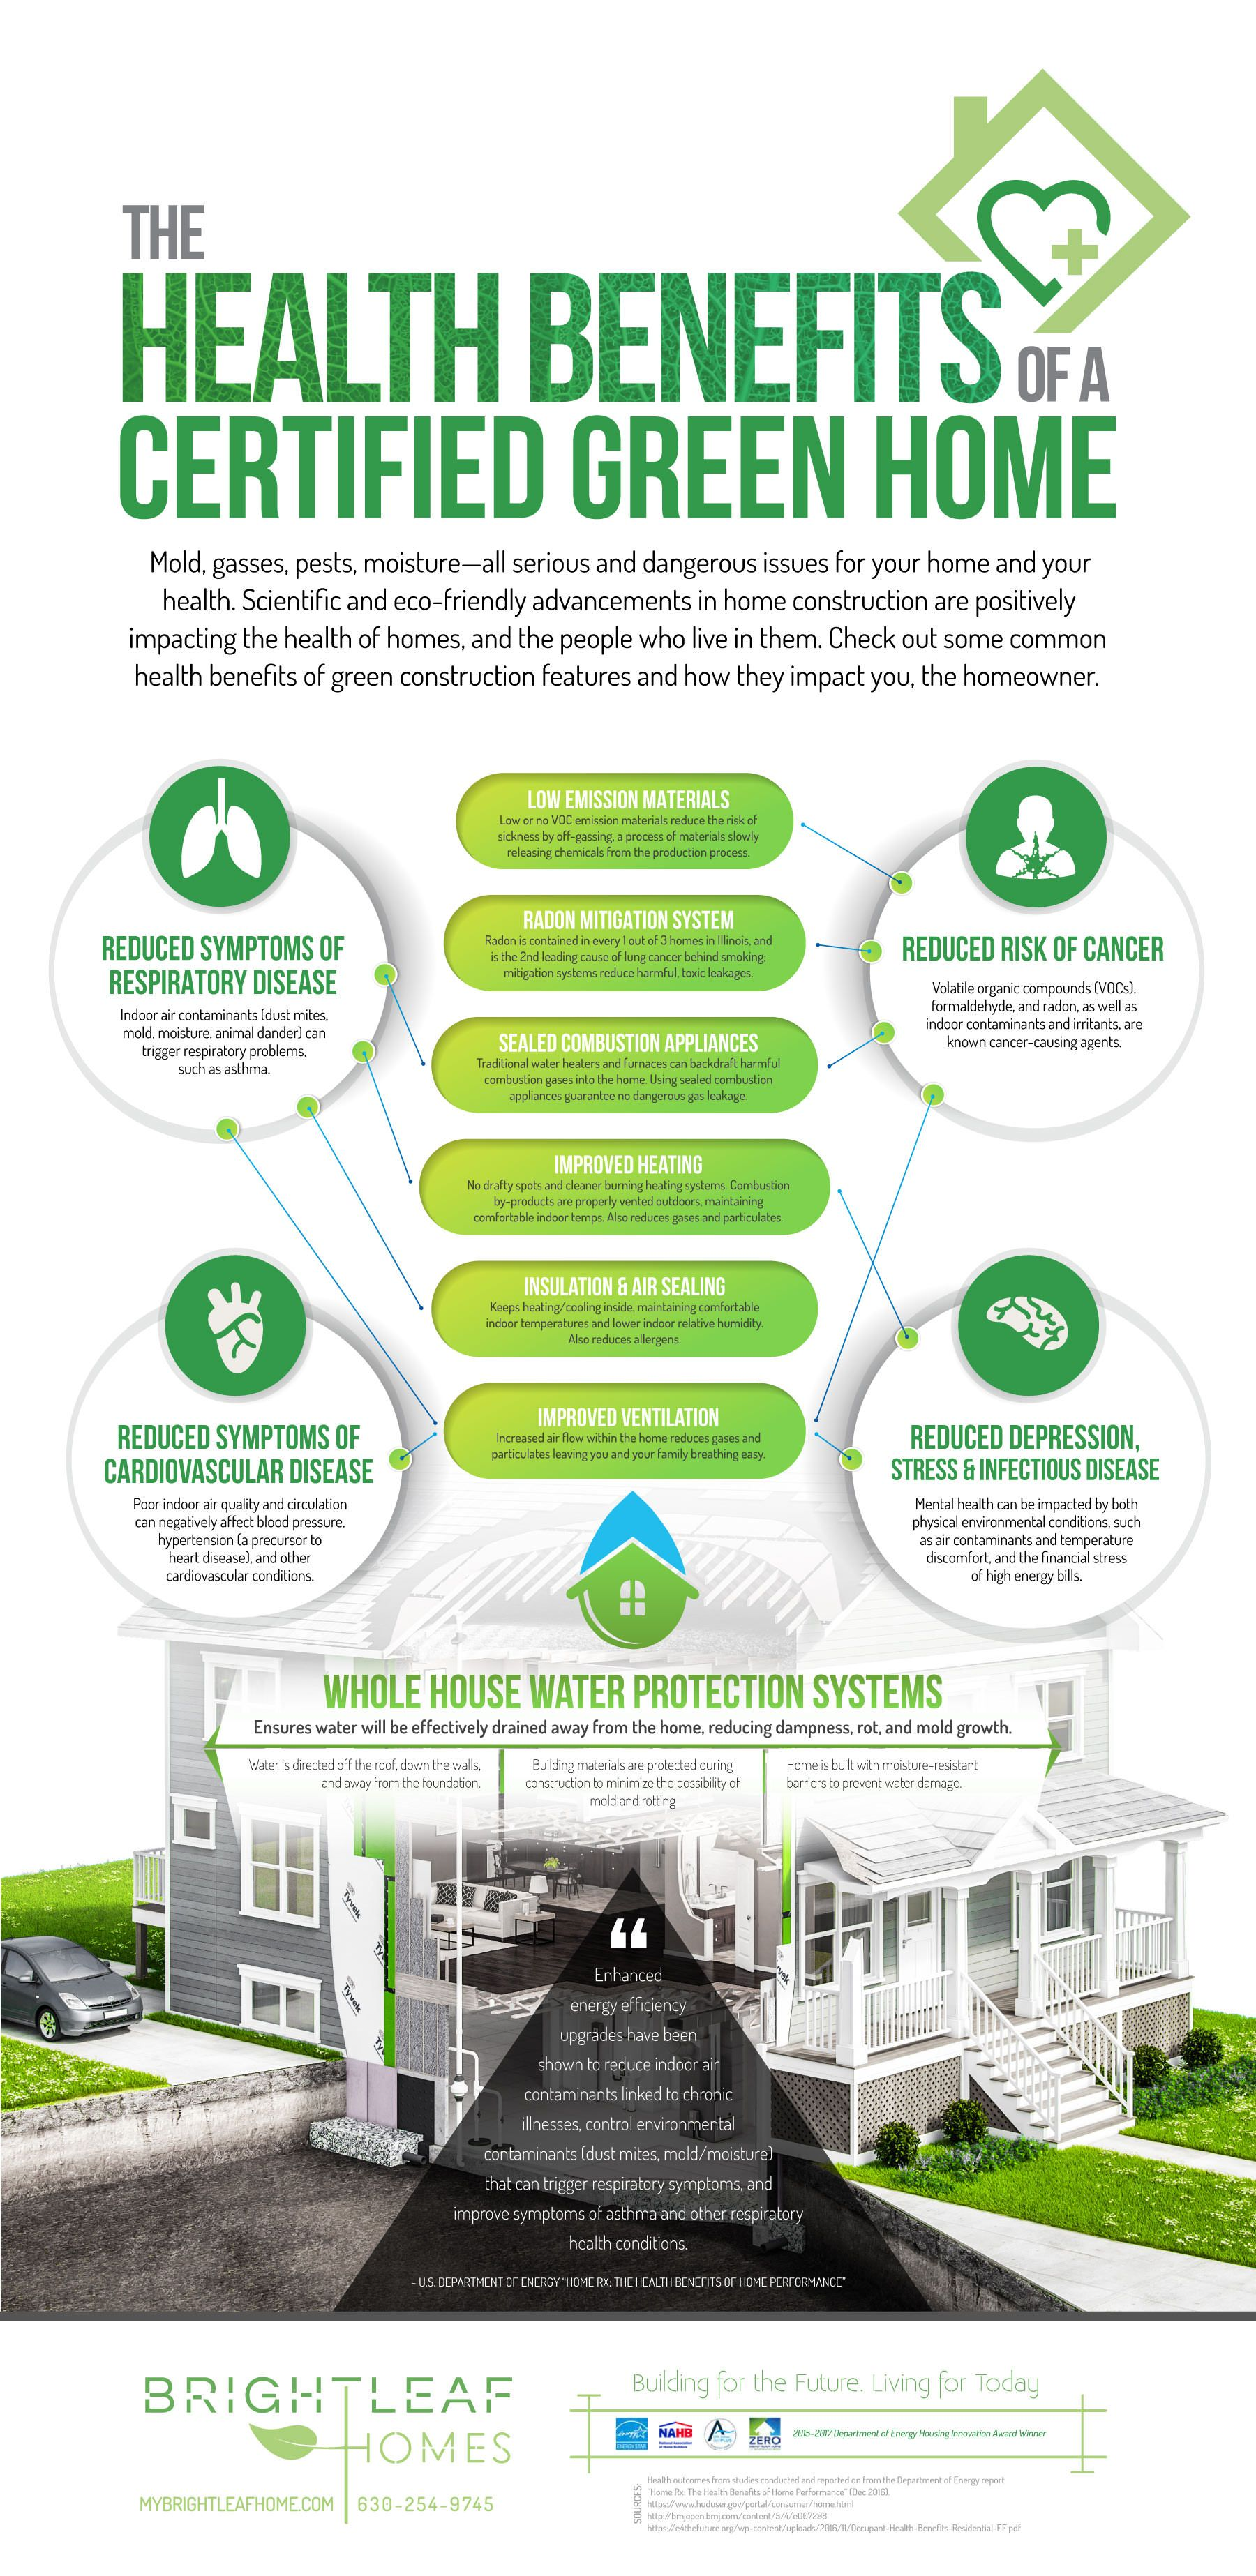 3 Healthy Home Infographic Working 2 Jpg 1 800 3 693 Pixels Green Construction Energy Efficient Homes Health Benefits